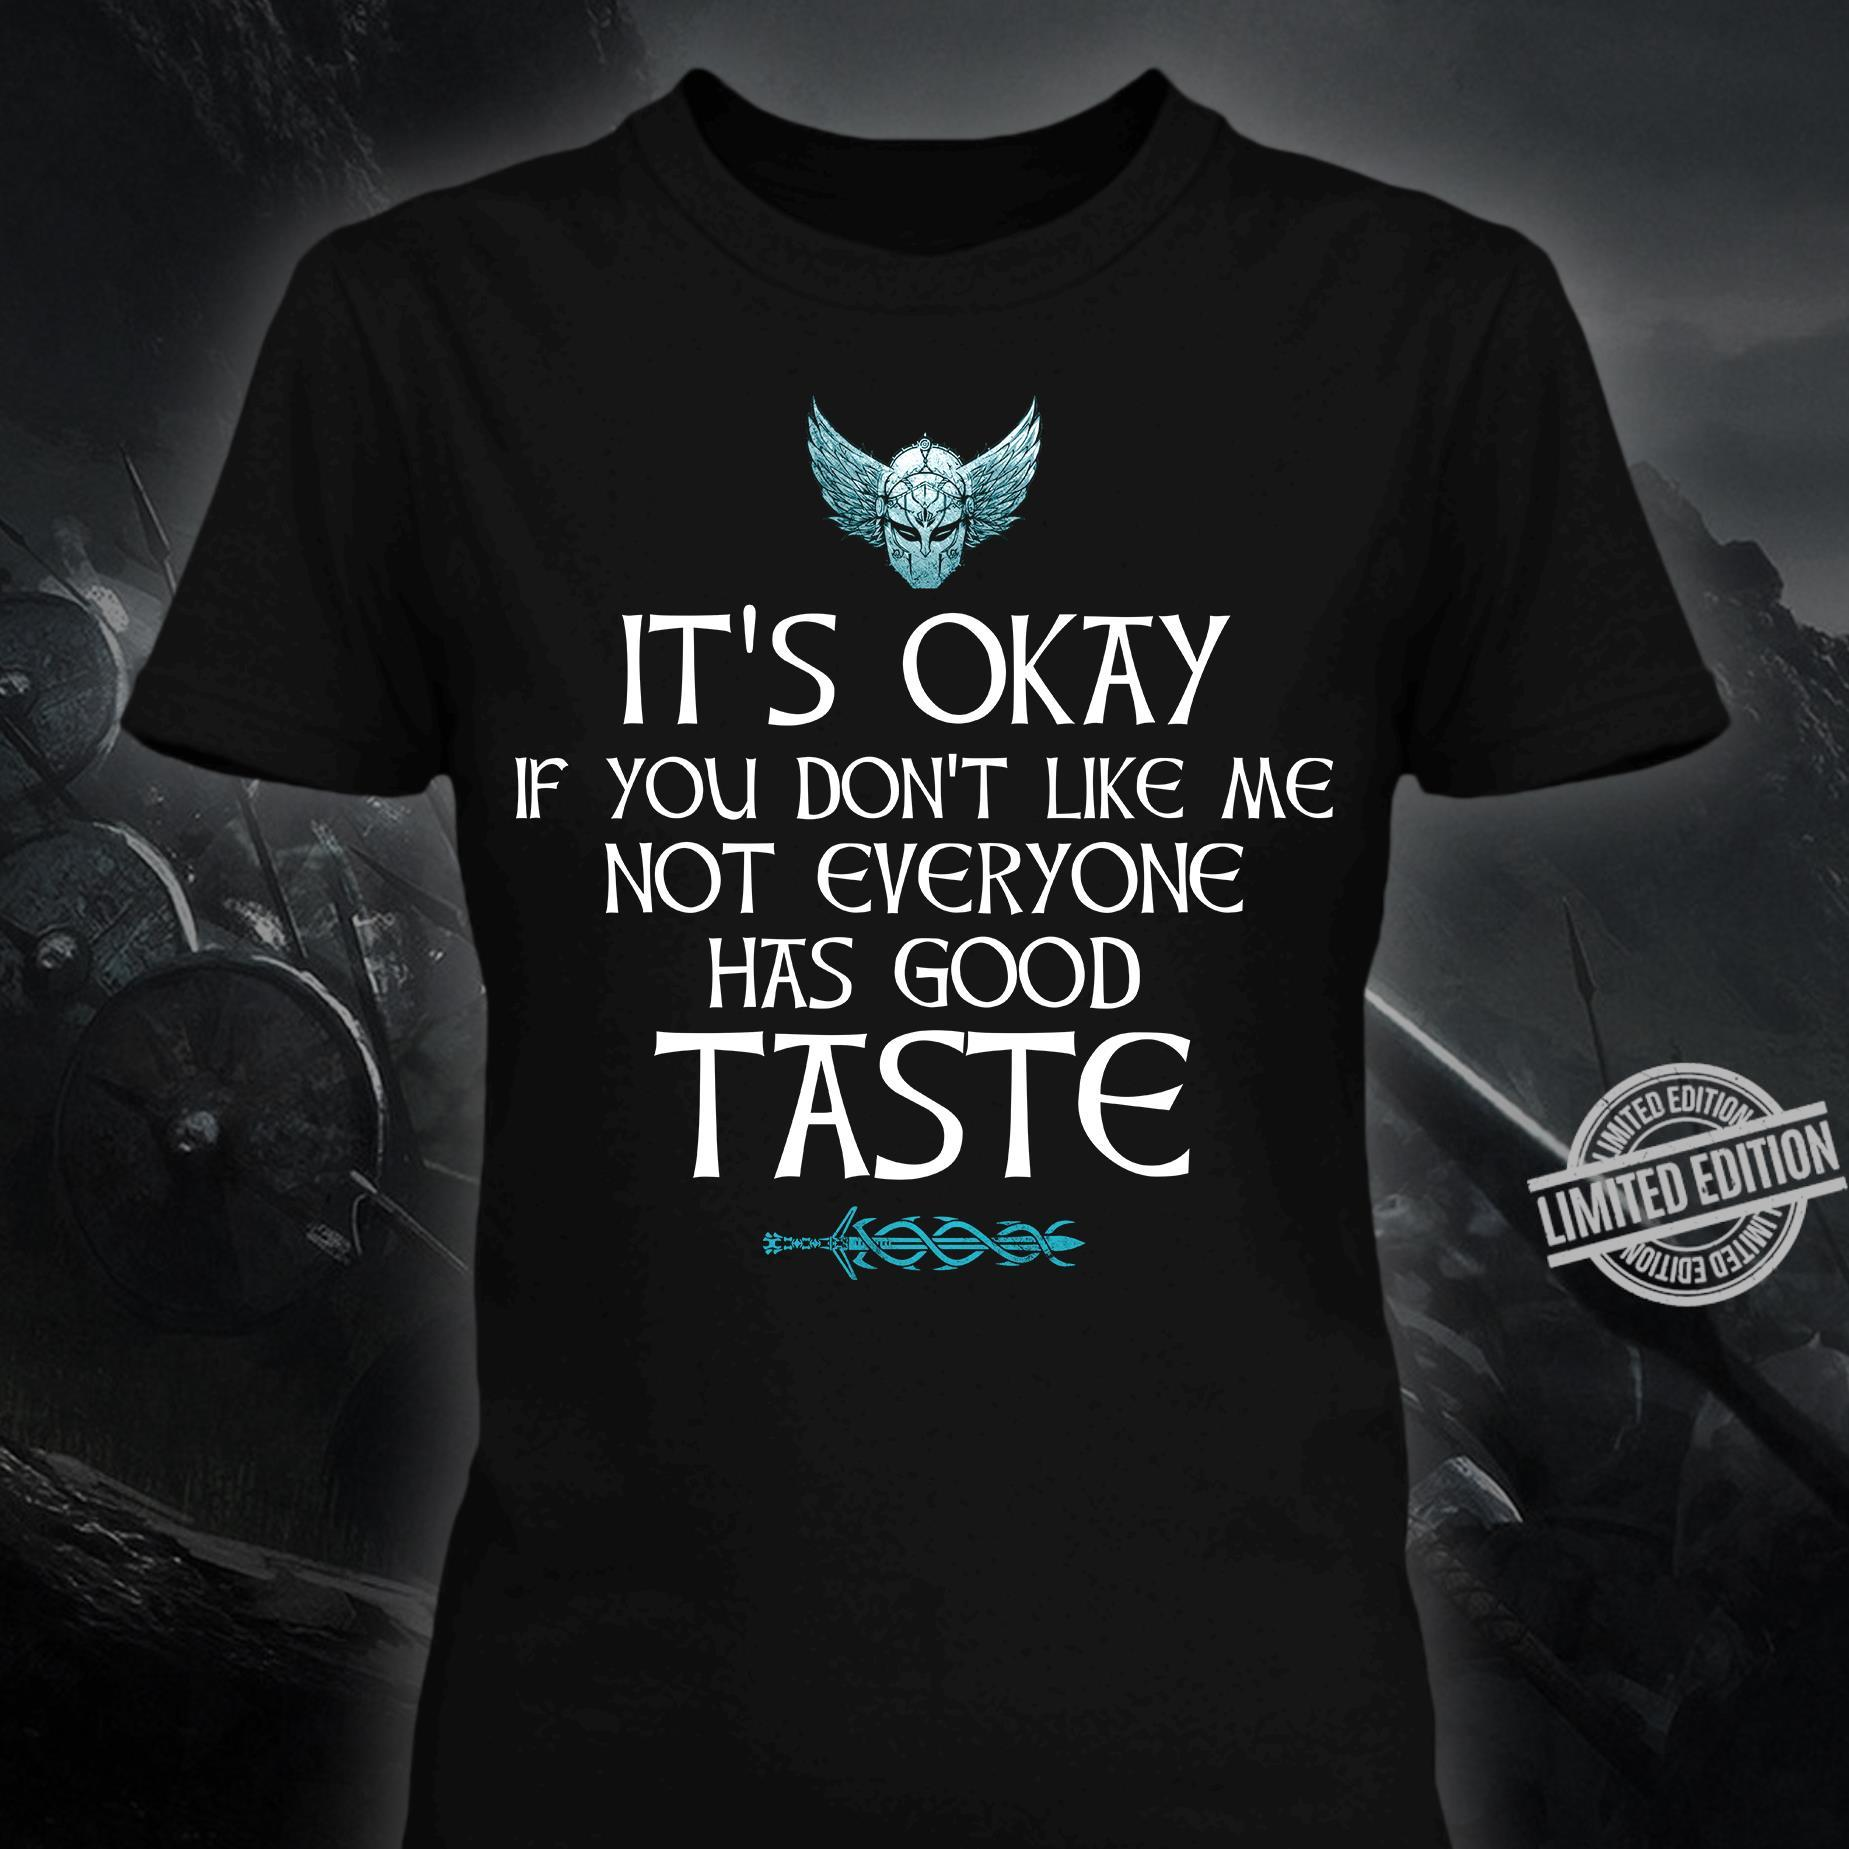 It's Okay If You Don't Like Me Not Everyone Has Good Taste Shirt